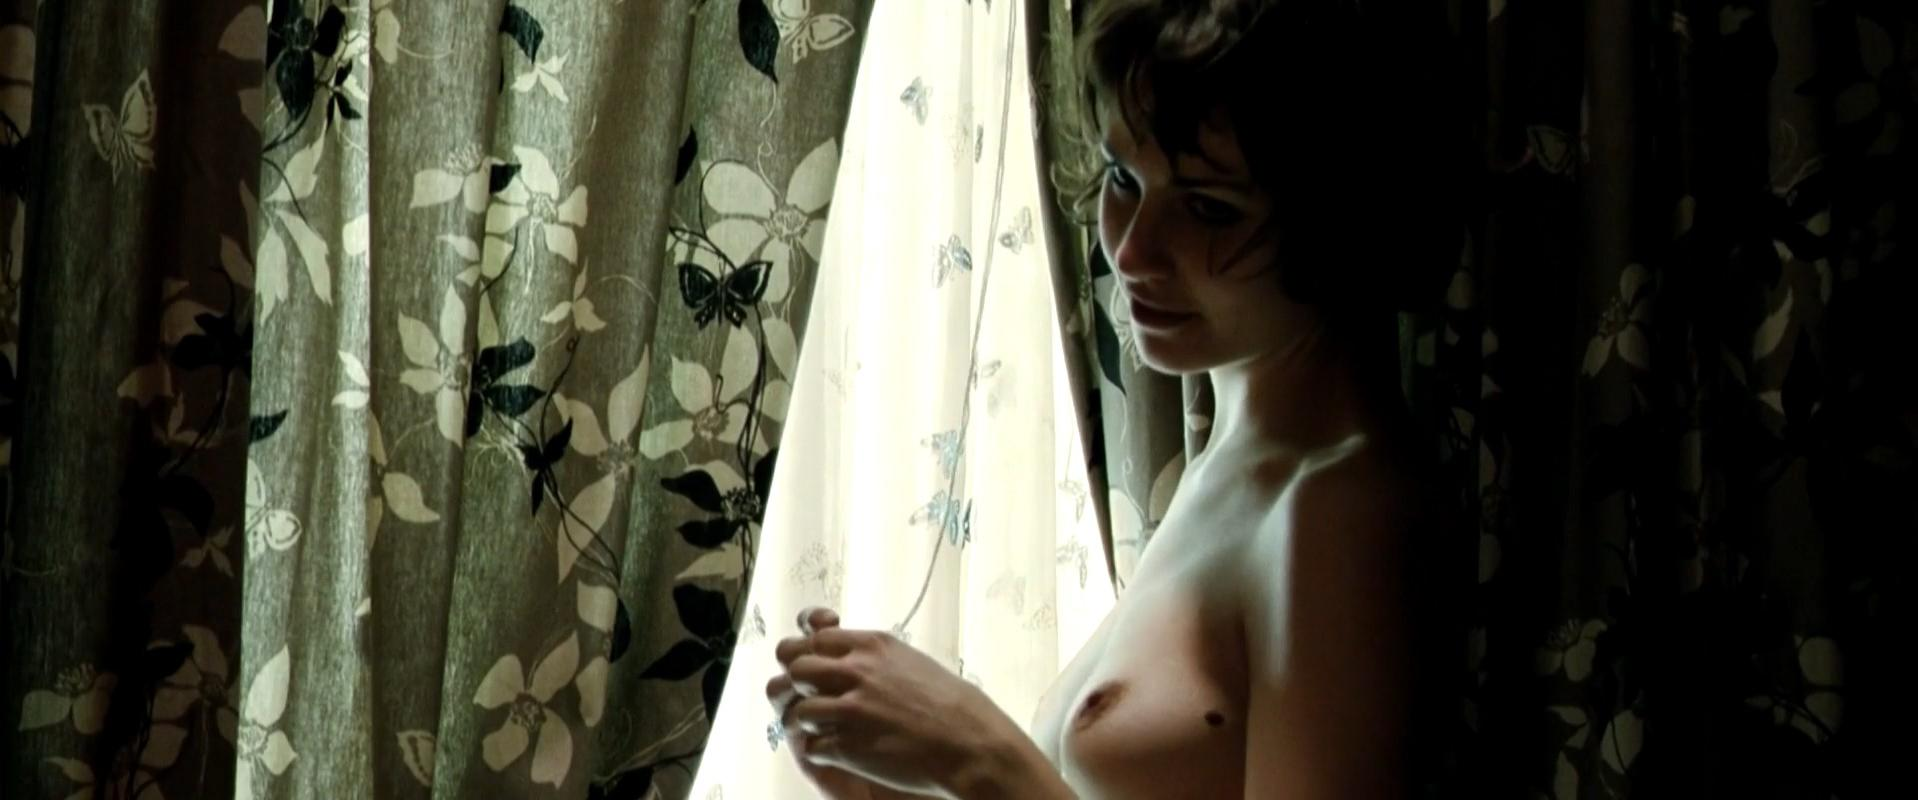 Tuppence Middleton nude - Cleanskin (2012)